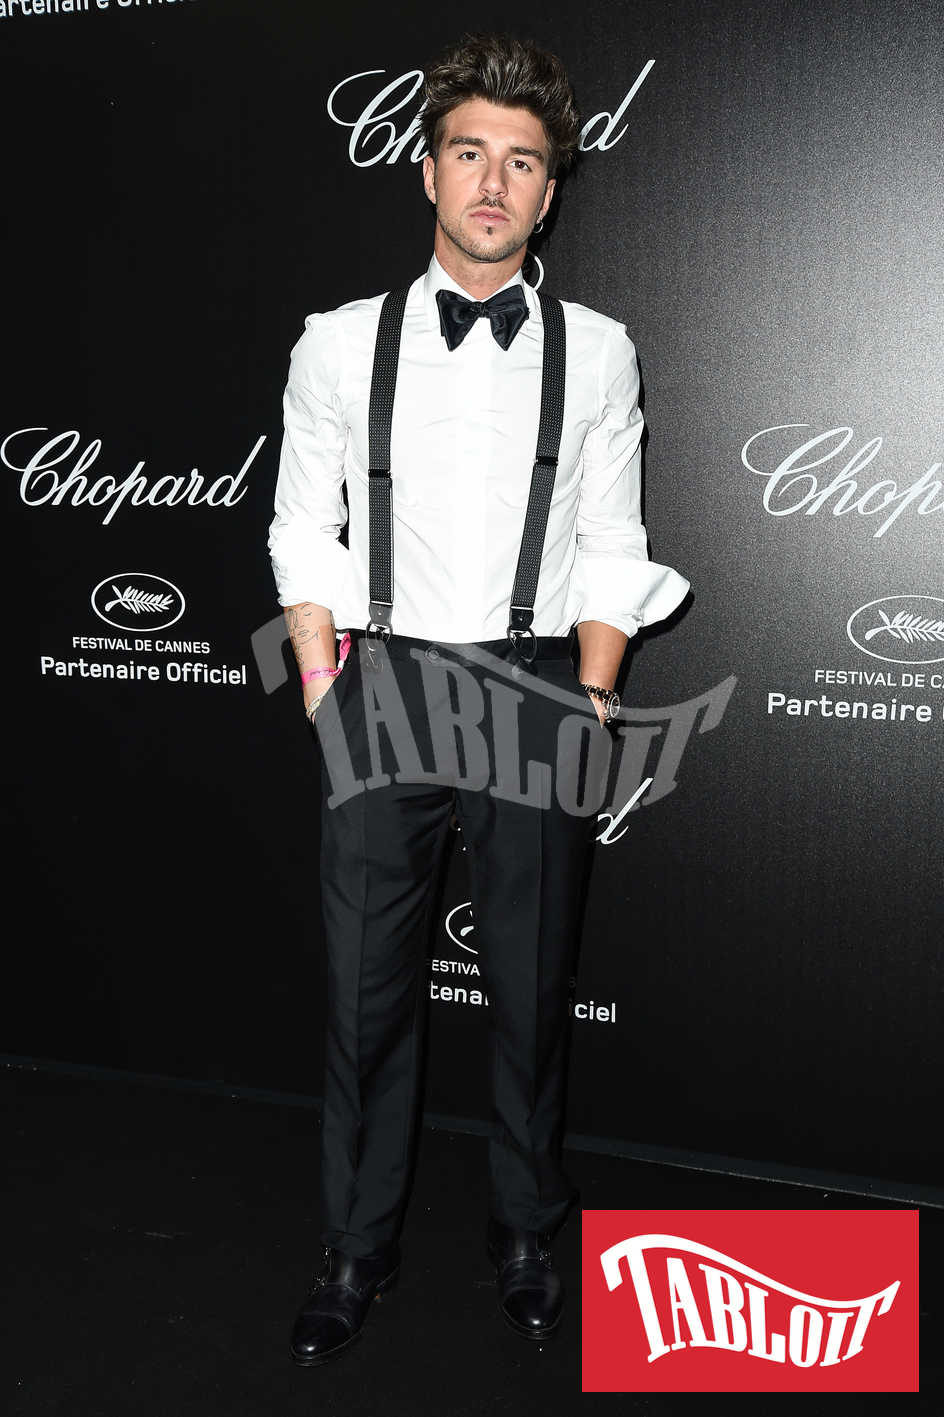 Andrea Damante in posa al party di Chopard durante il festival del cinema di Cannes